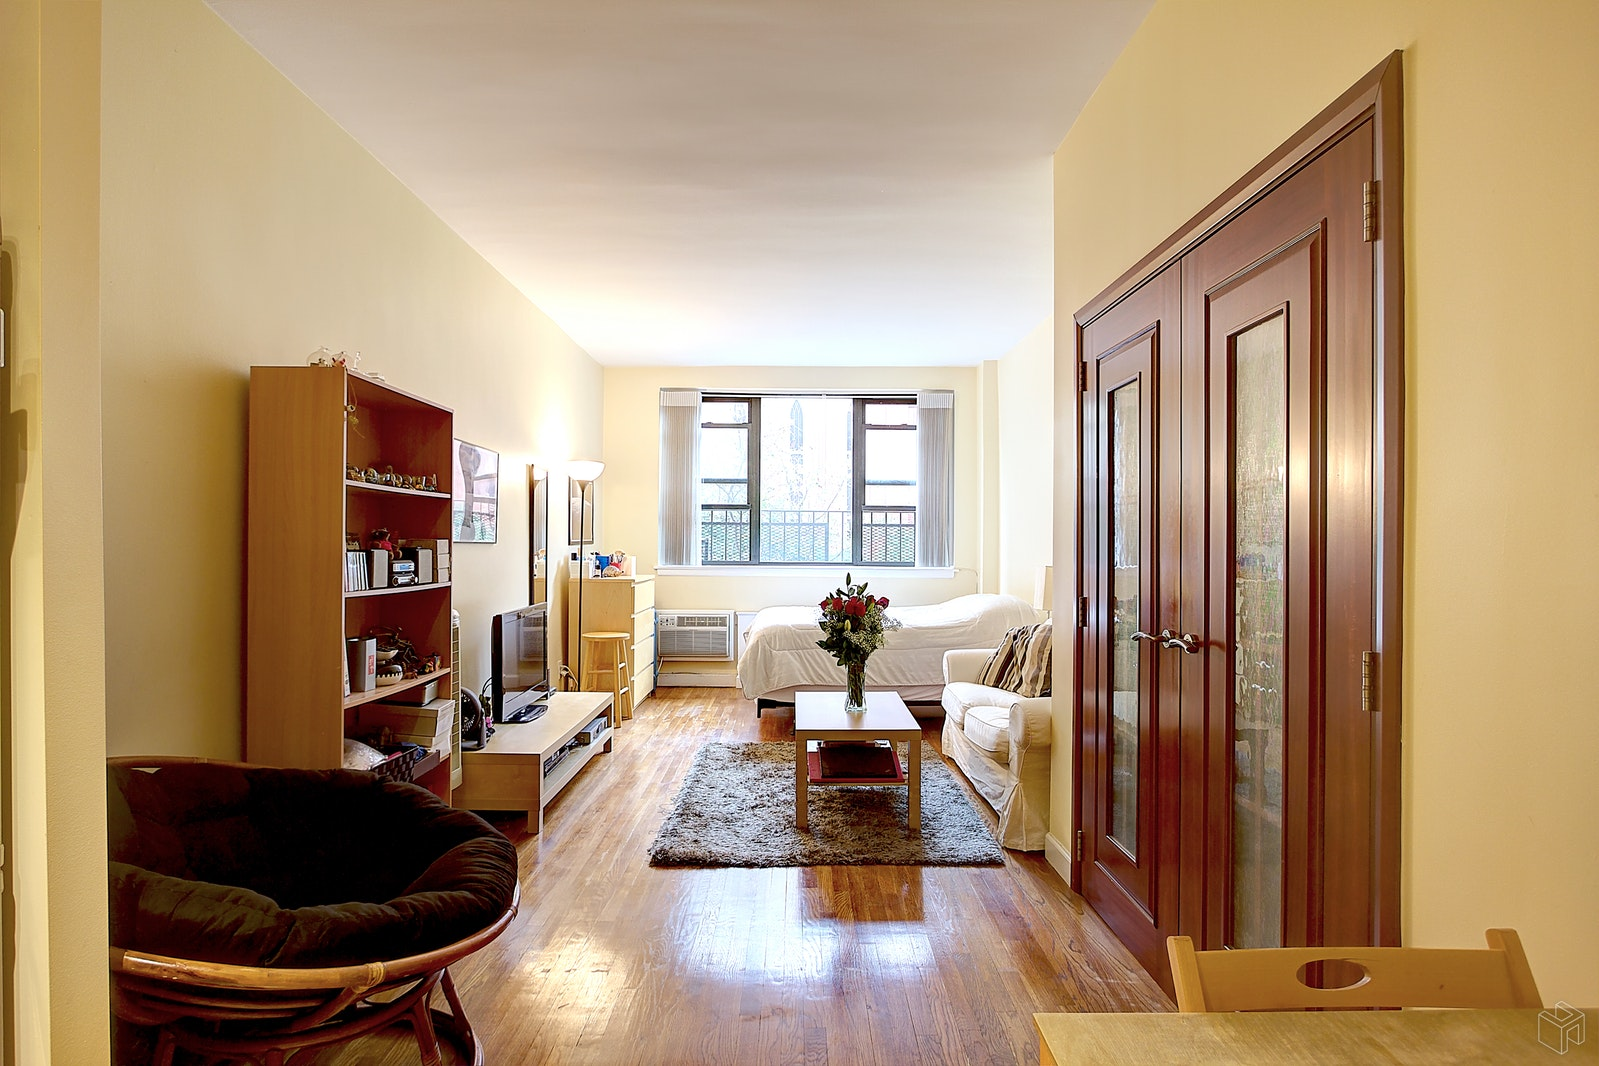 220 East 87th Street 3c, Upper East Side, NYC, 10128, Price Not Disclosed, Rented Property, Halstead Real Estate, Photo 1